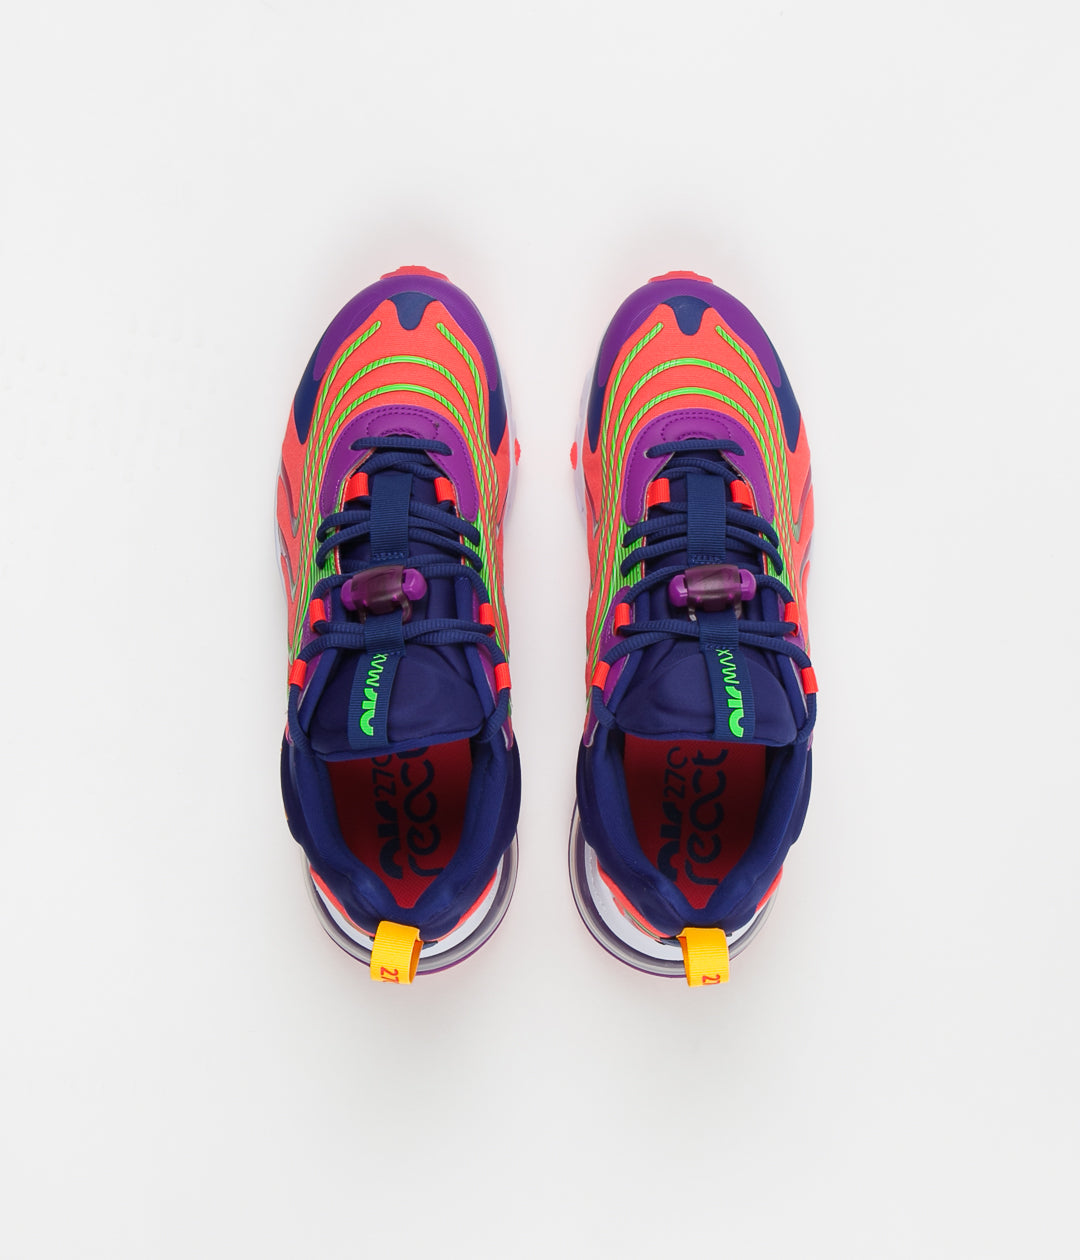 Nike Air Max 270 React Eng Shoes Laser Crimson Laser Orange Always In Colour